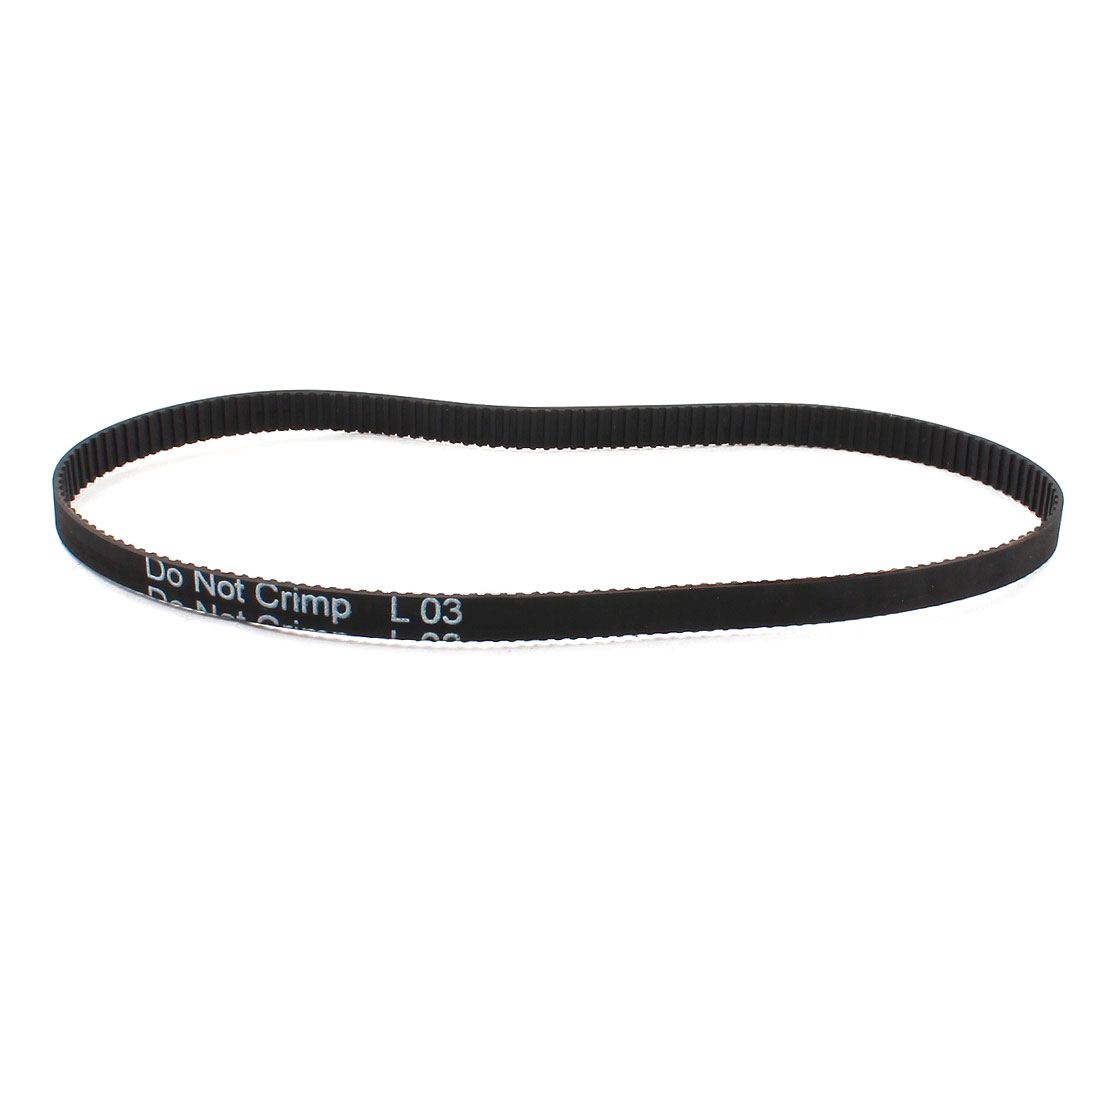 "134MXL025 168 Teeth 2.032mm Pitch 1/4"" Width Black Single Side Industrial Cogged Synchronous Timing Belt 341.38mm Grith"